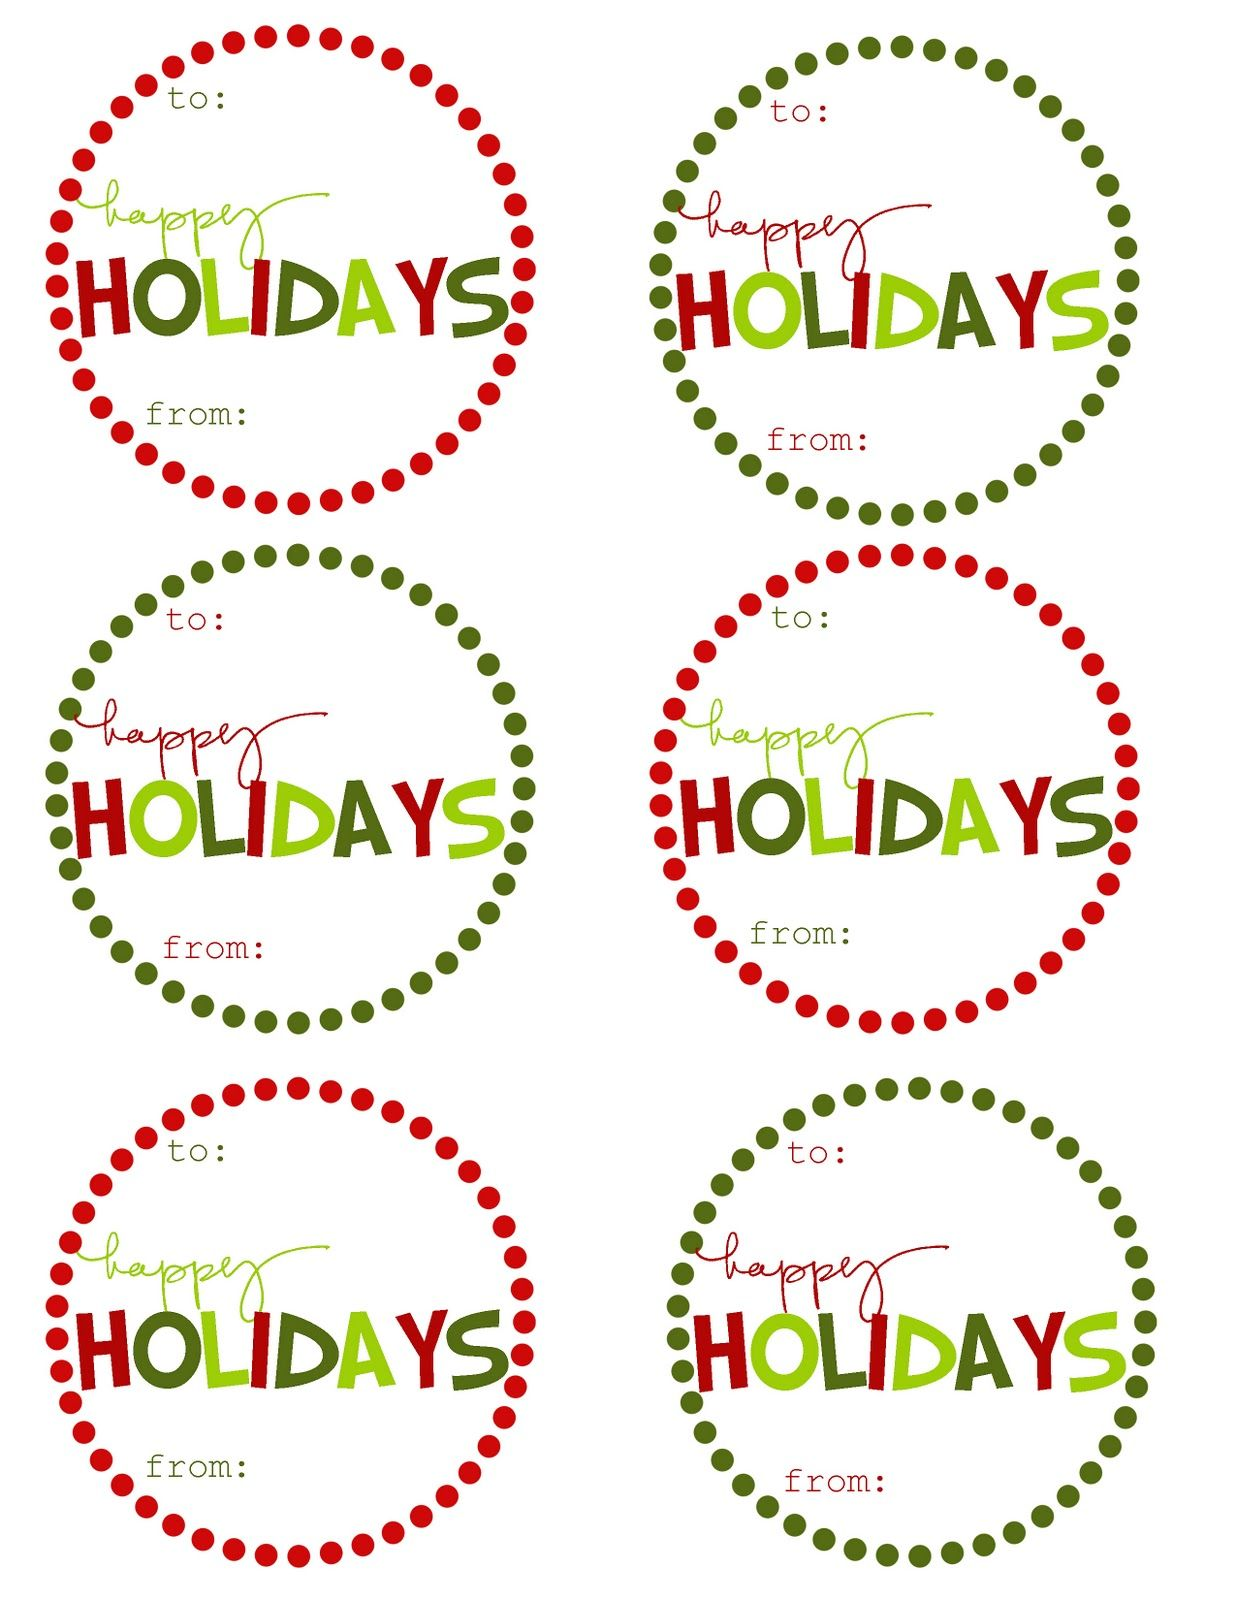 Free Printable} Christmas Gift Tags | etiquetas | Pinterest ...